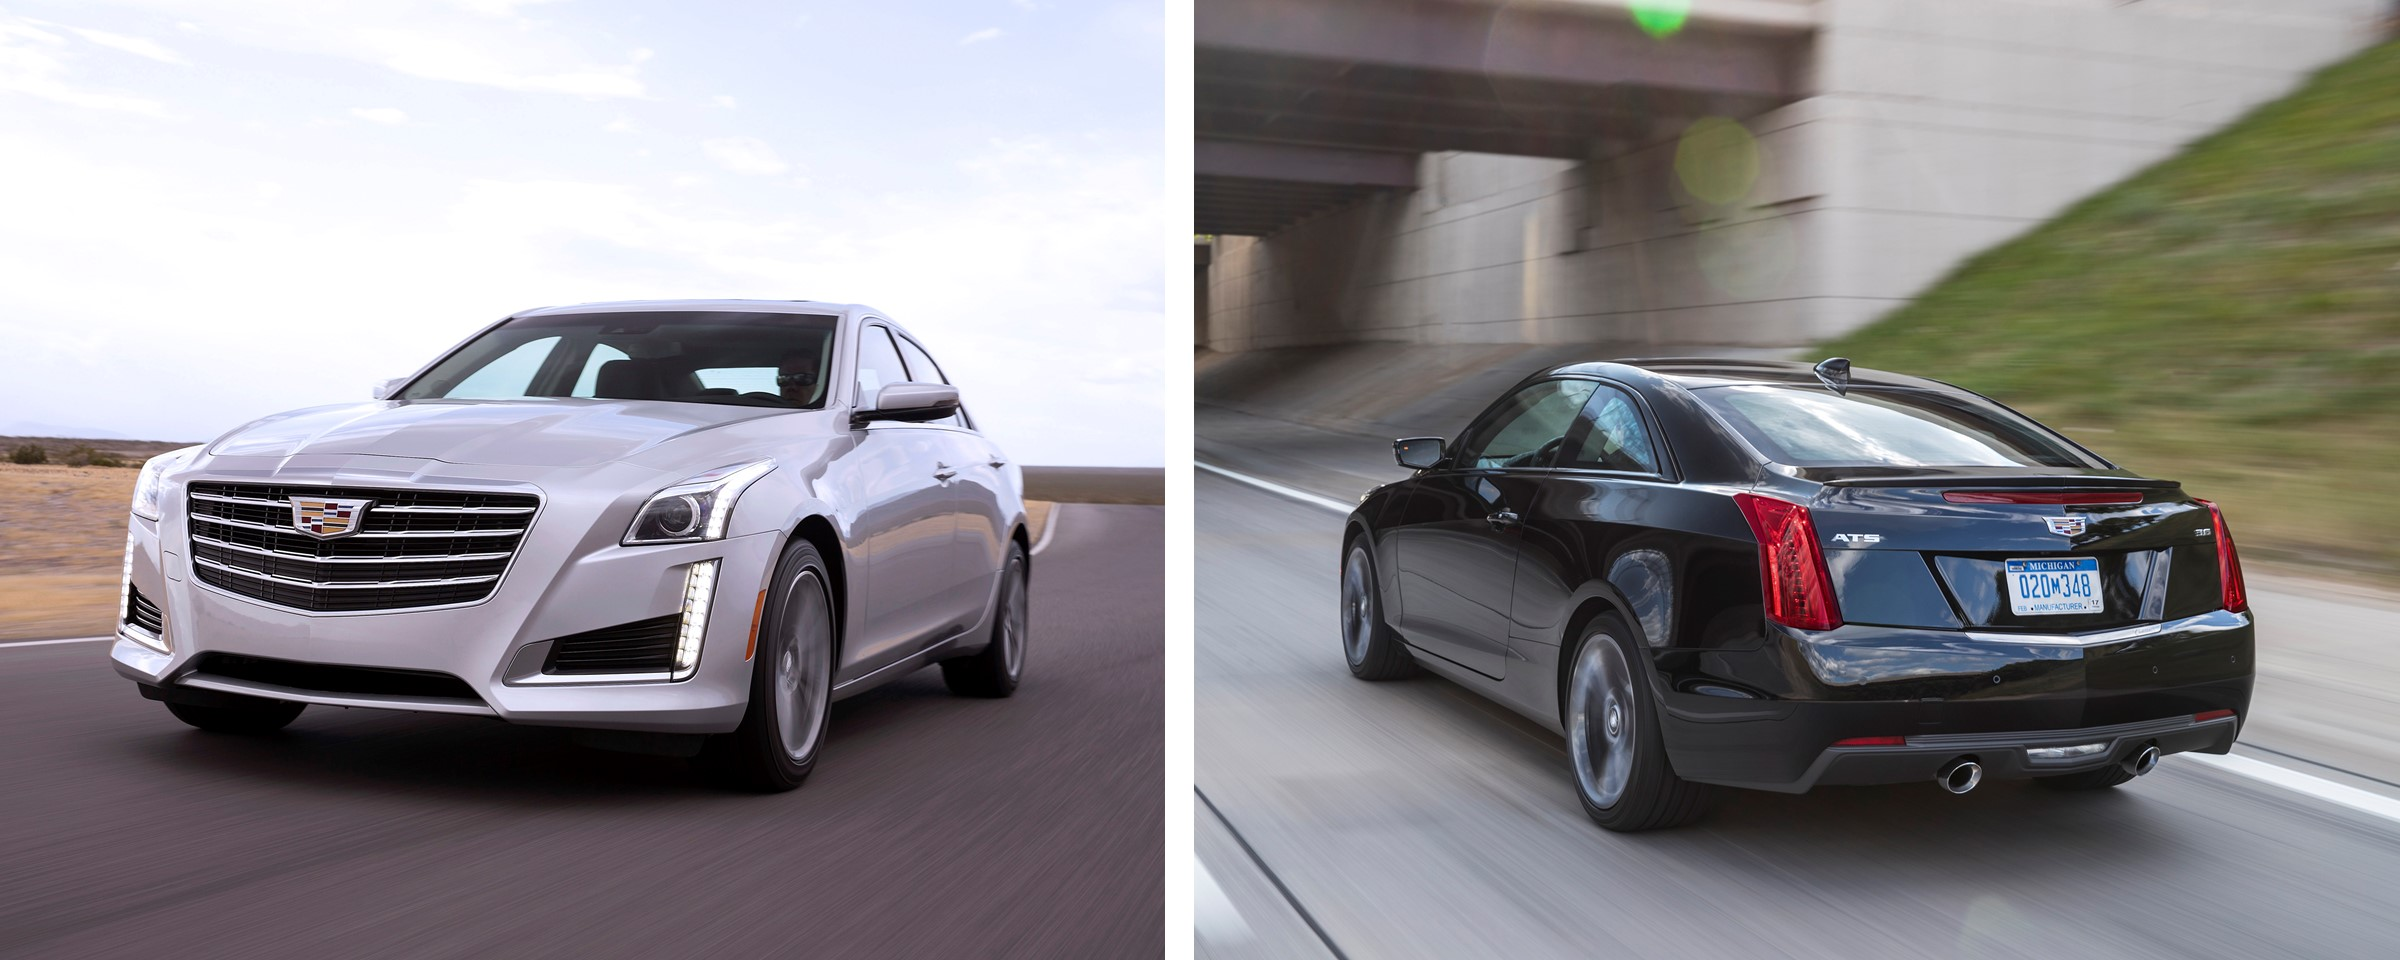 The cadillac ats and cts refined for 2017 baker motor for Cadillac motor car company